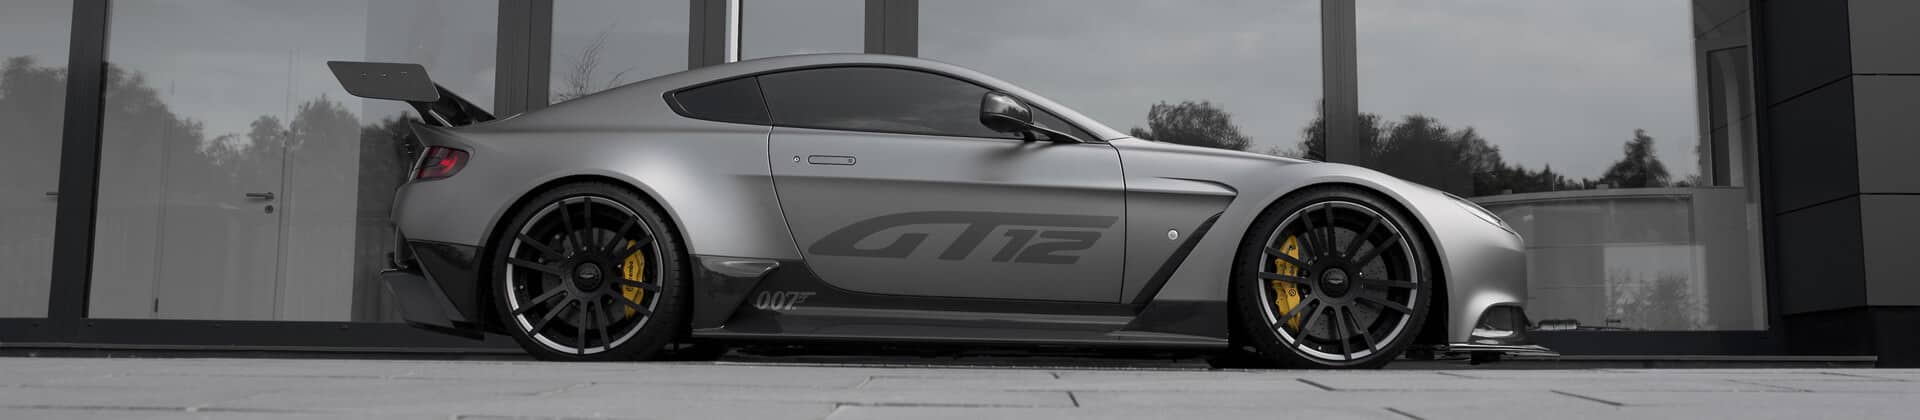 Aston Martin GT12 Exhaust